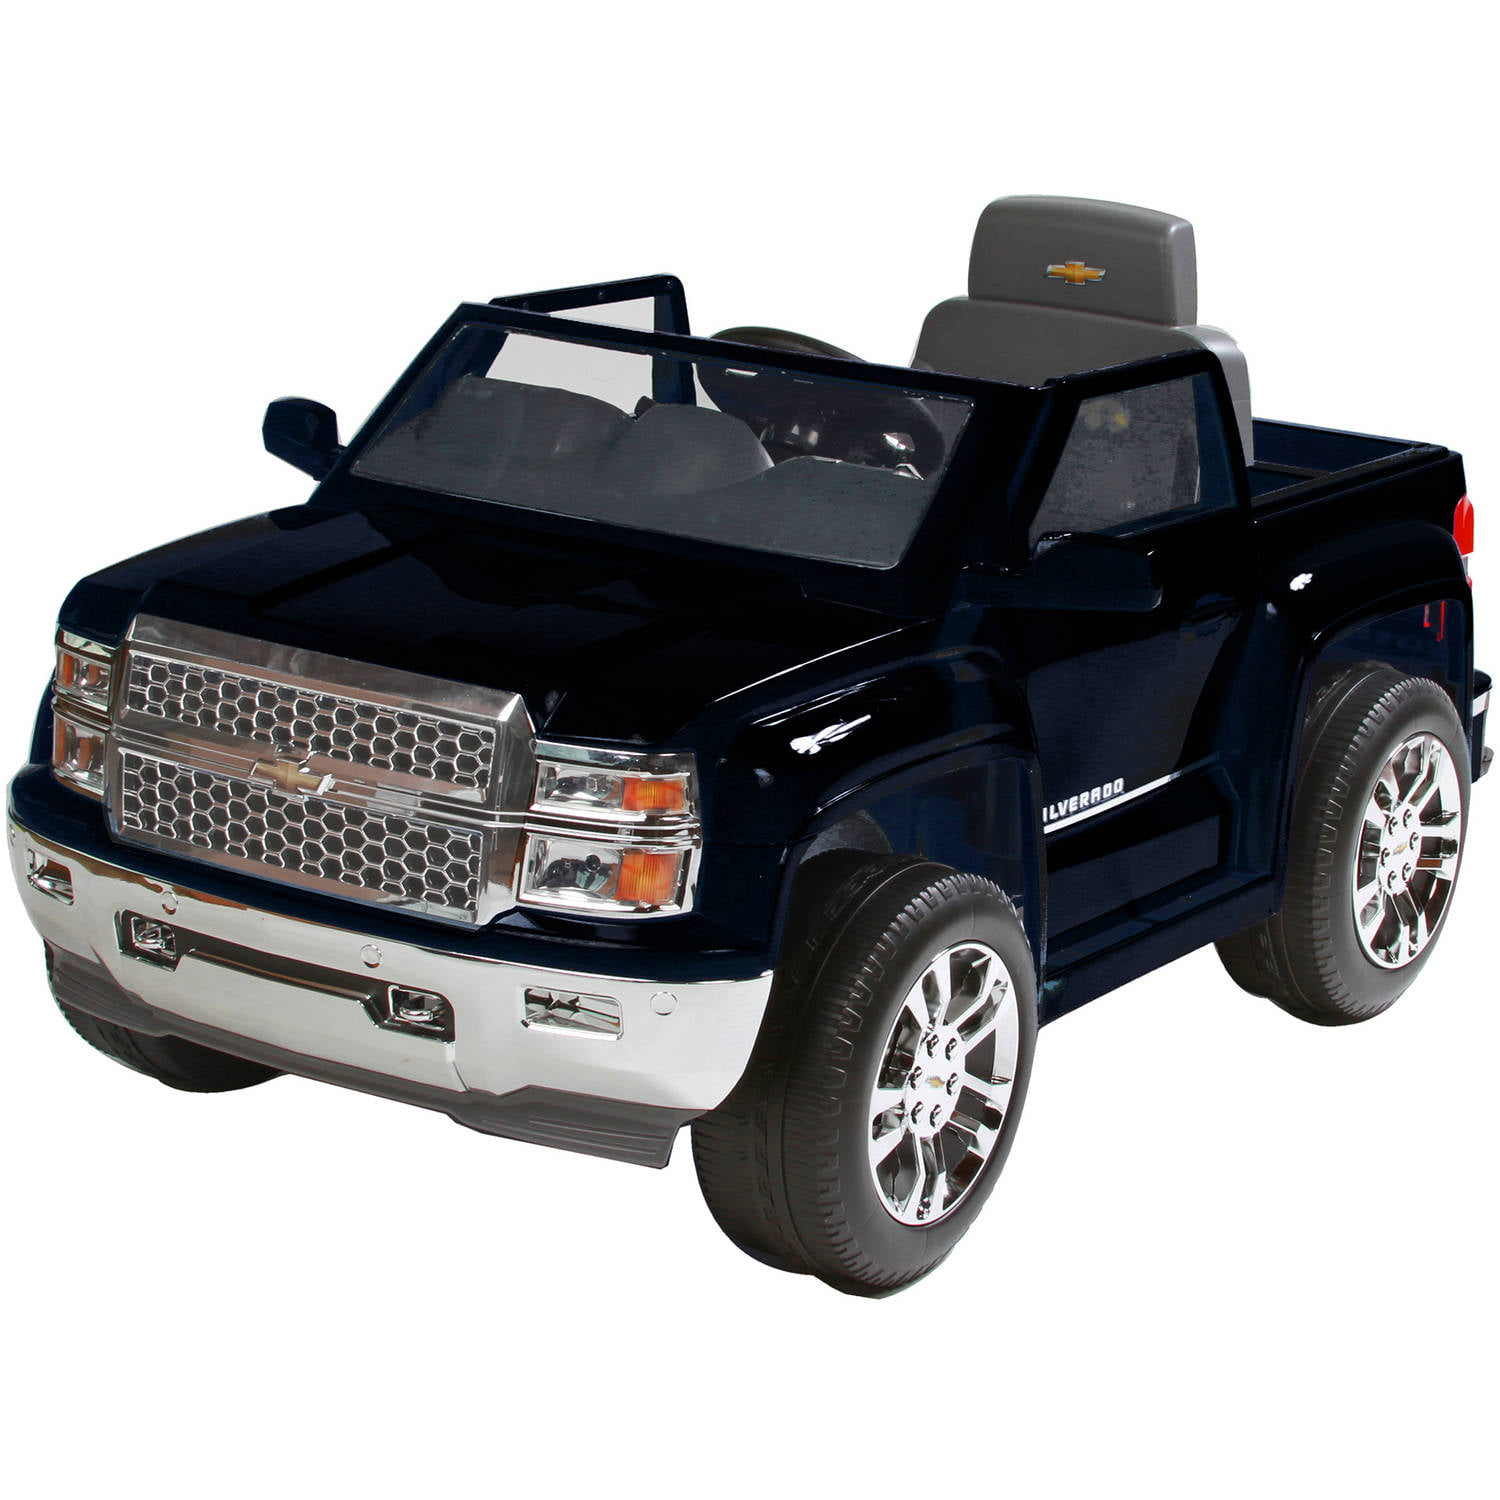 Gmc Black Friday >> Power Wheels Chevy Silverado Truck | www.pixshark.com - Images Galleries With A Bite!